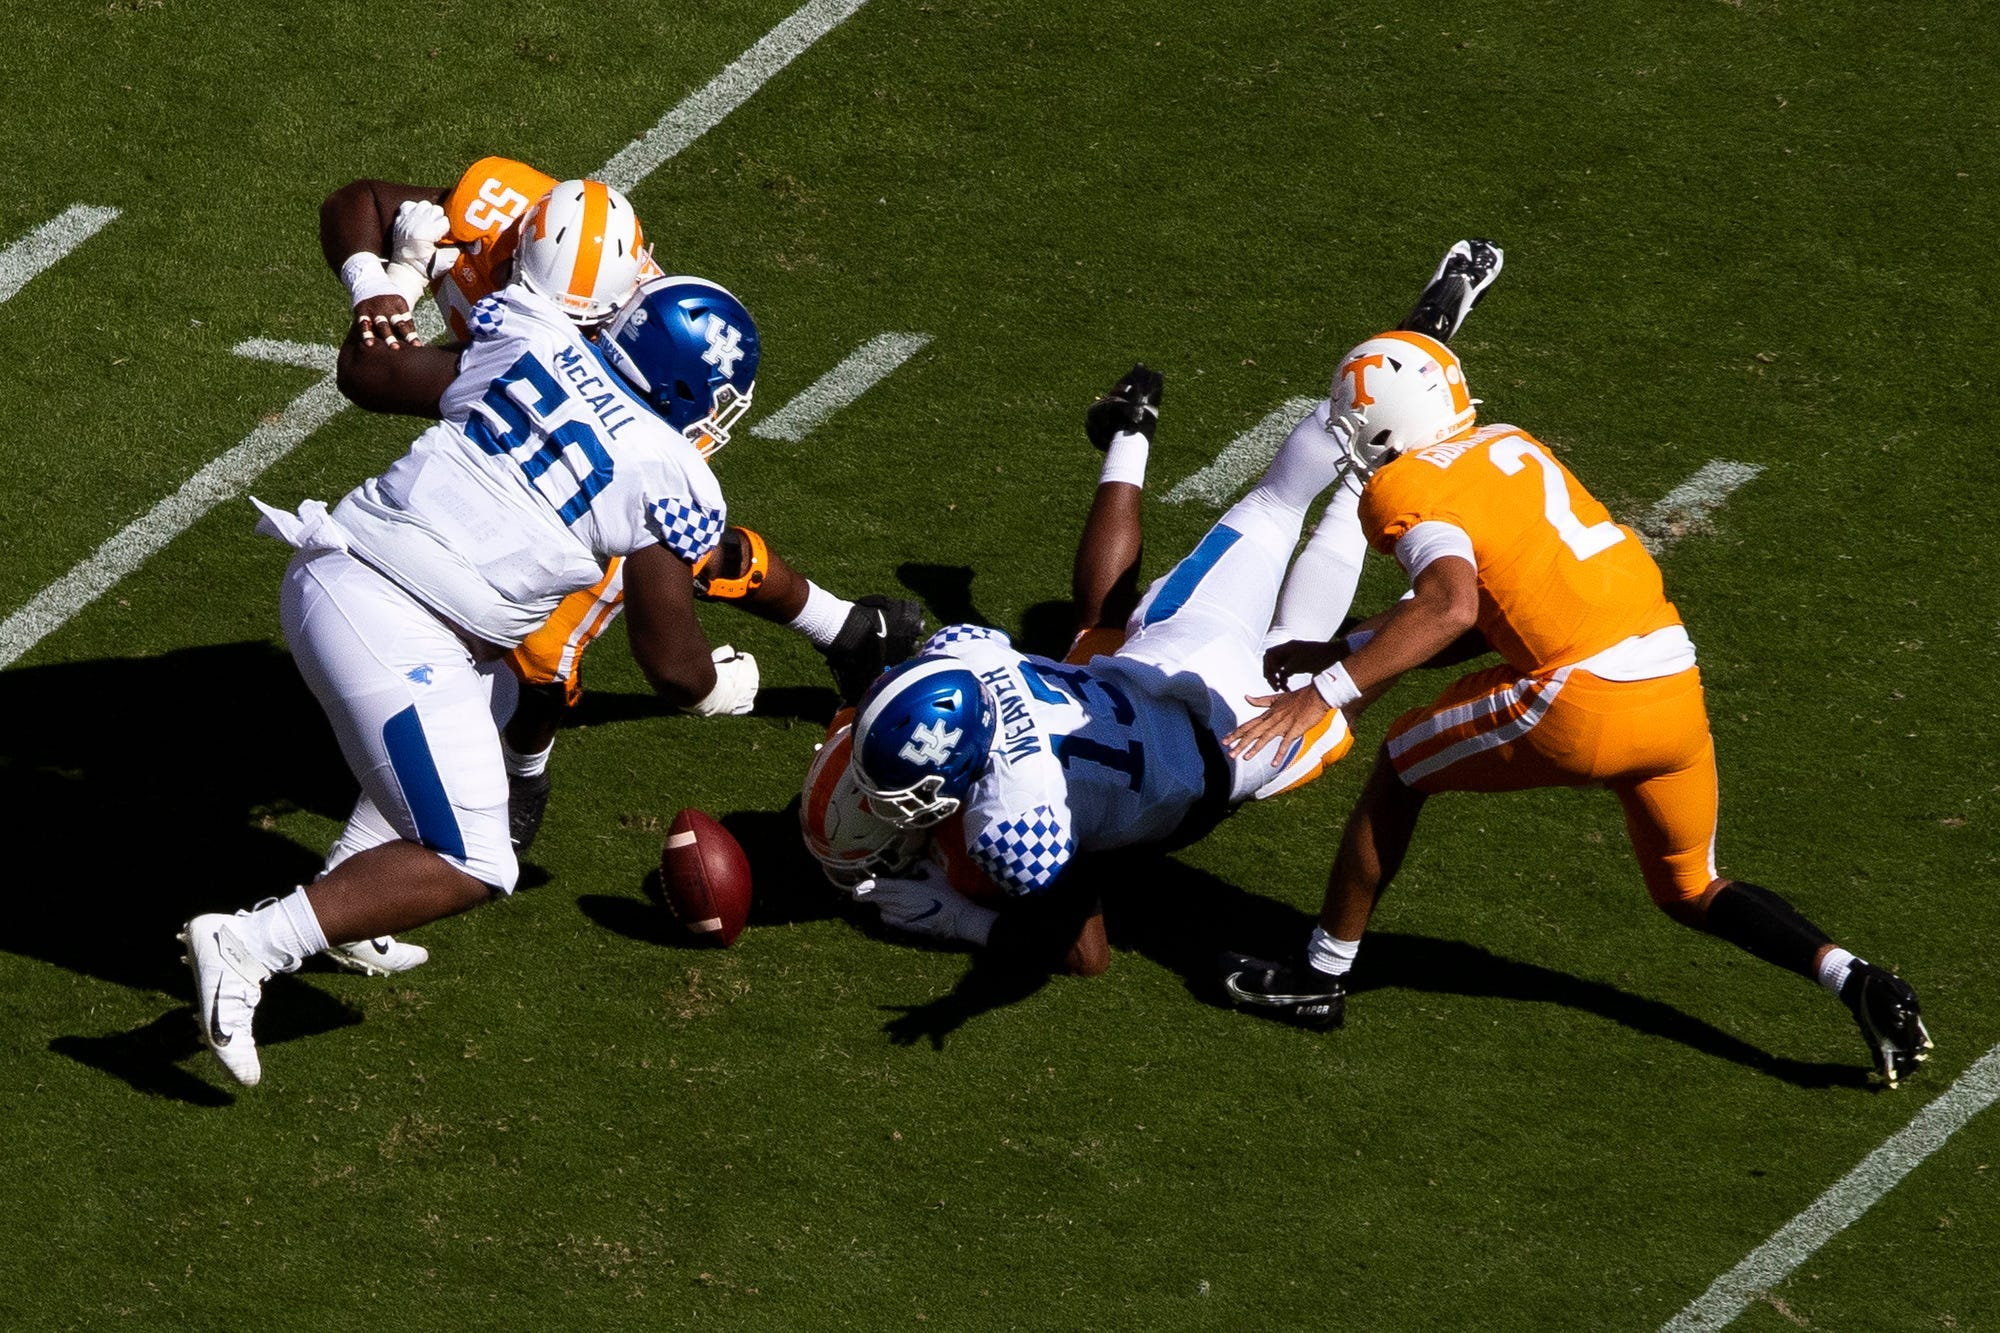 Kentucky dominates No. 17 Tennessee for first victory in Knoxville since 1984